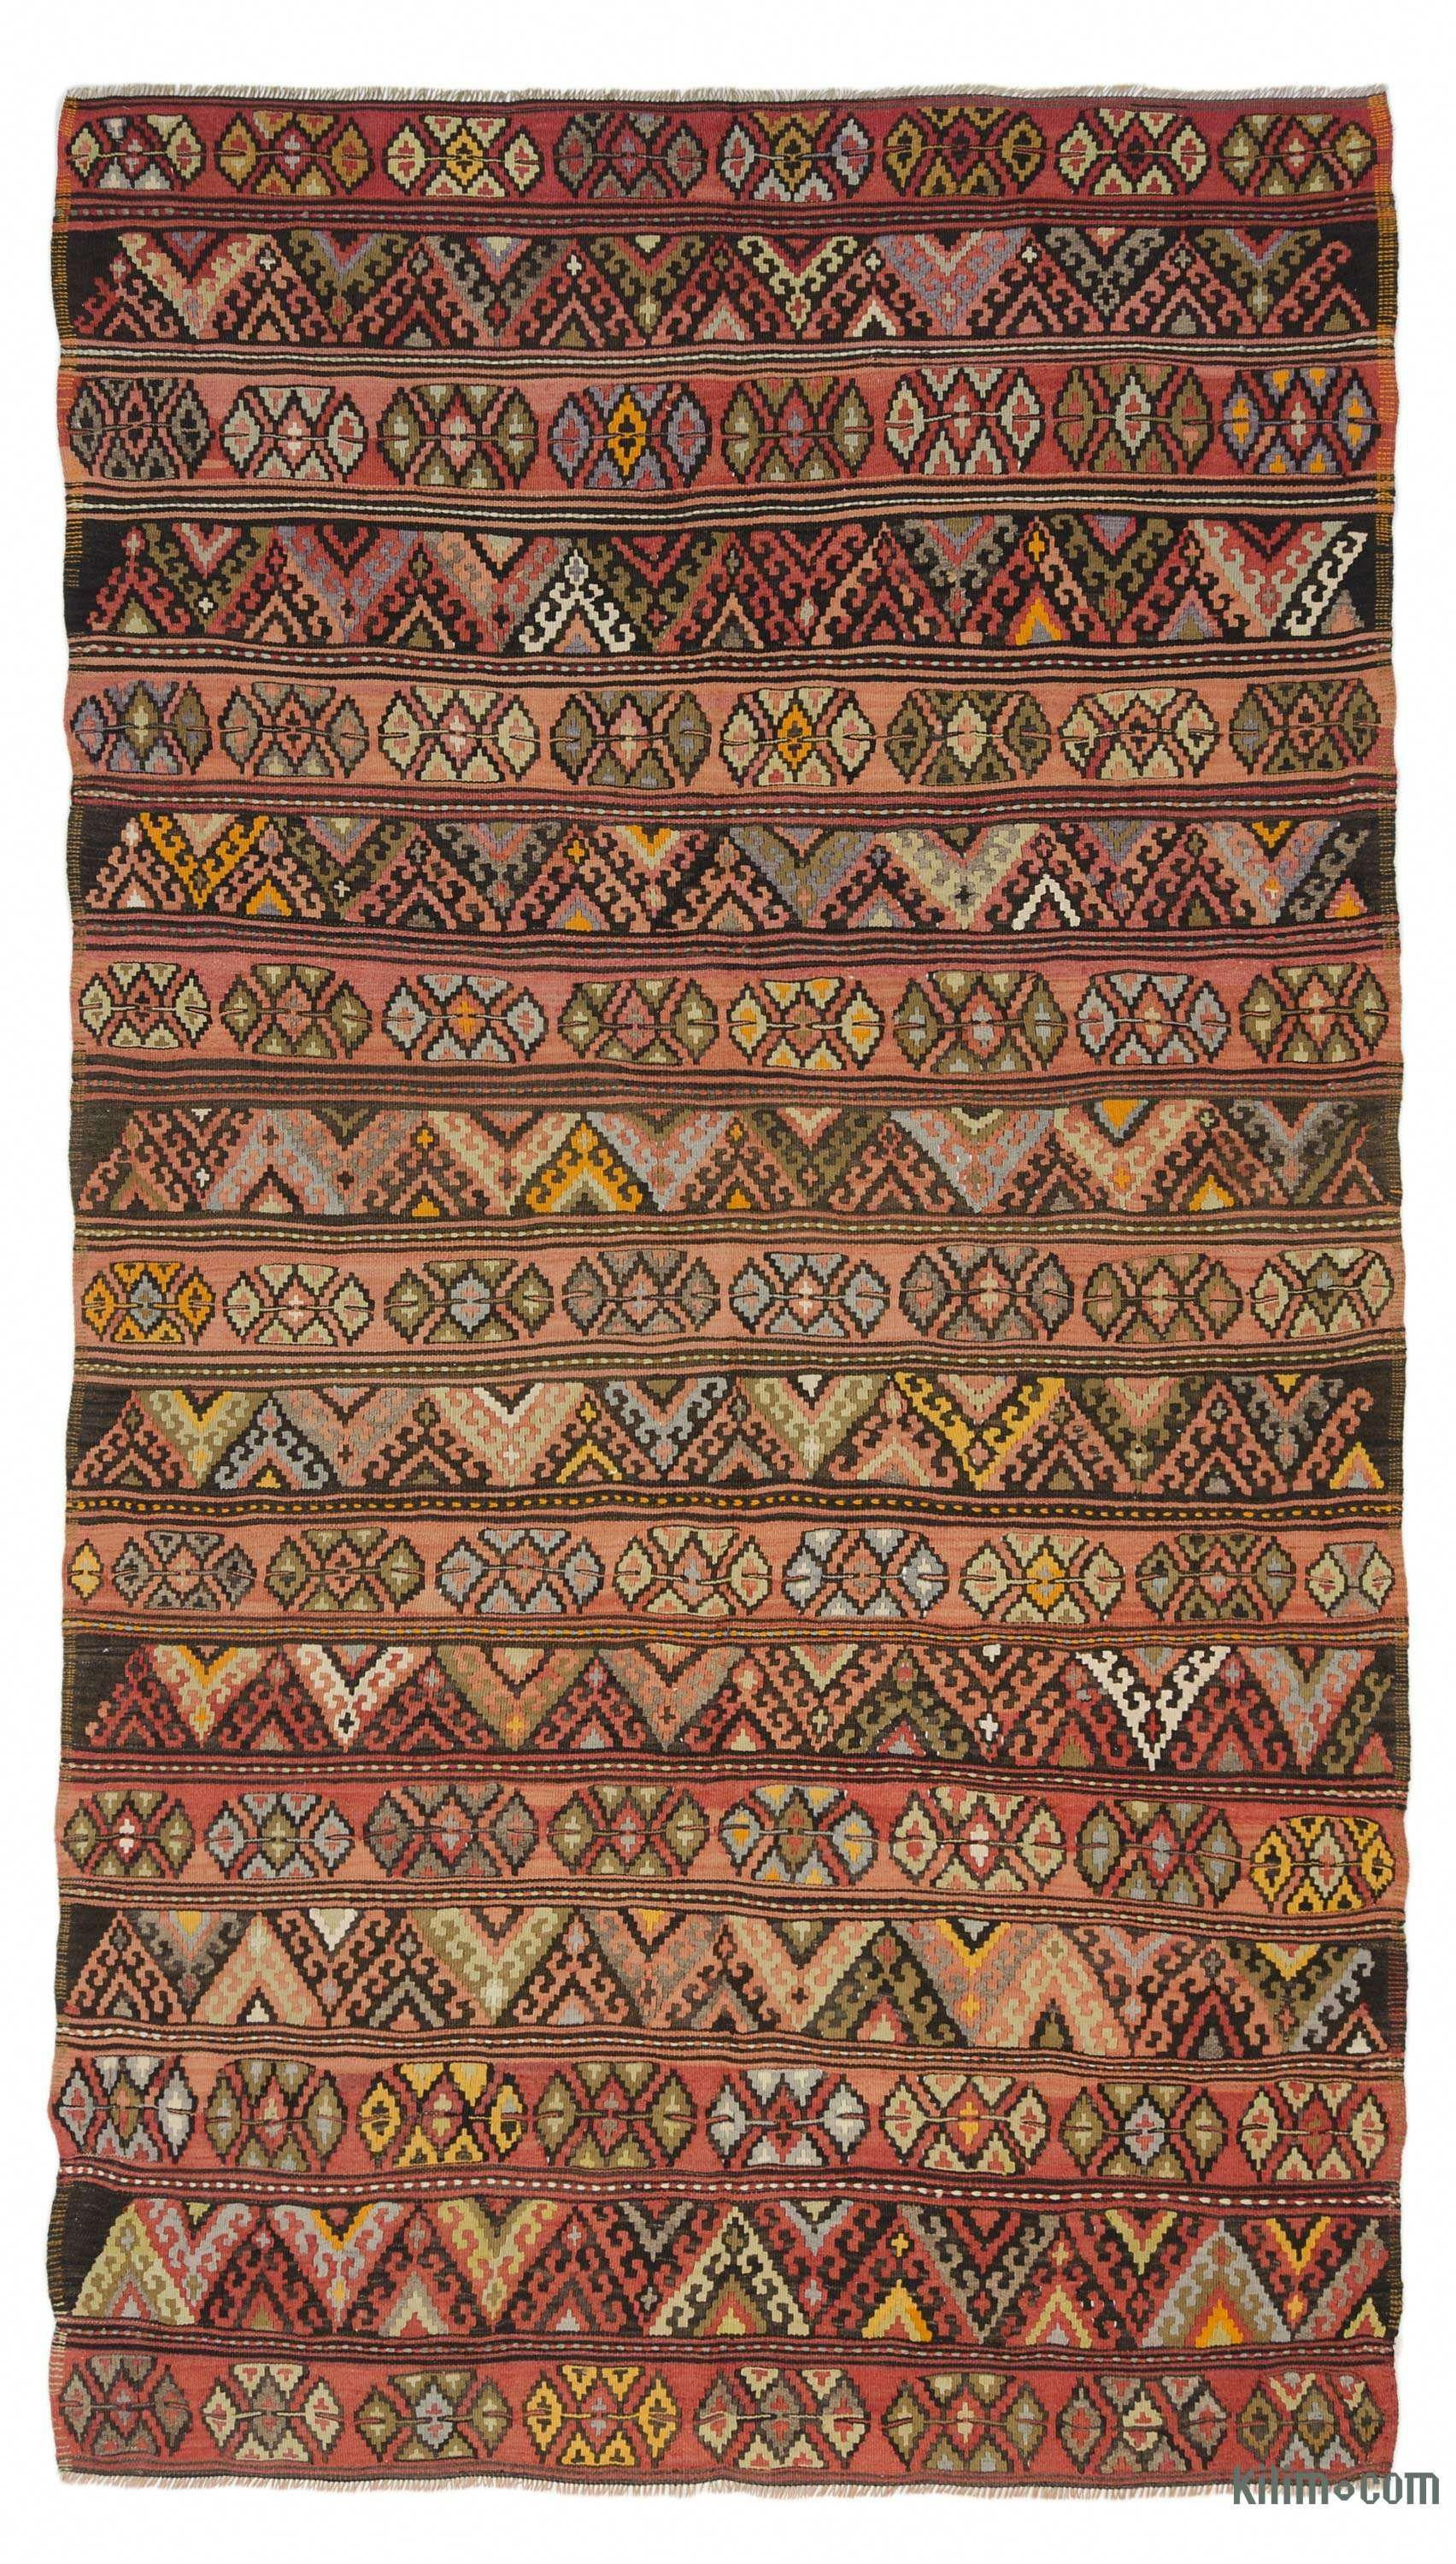 Discount Carpet Runners By The Foot | Cheap Carpet Runners By The Foot